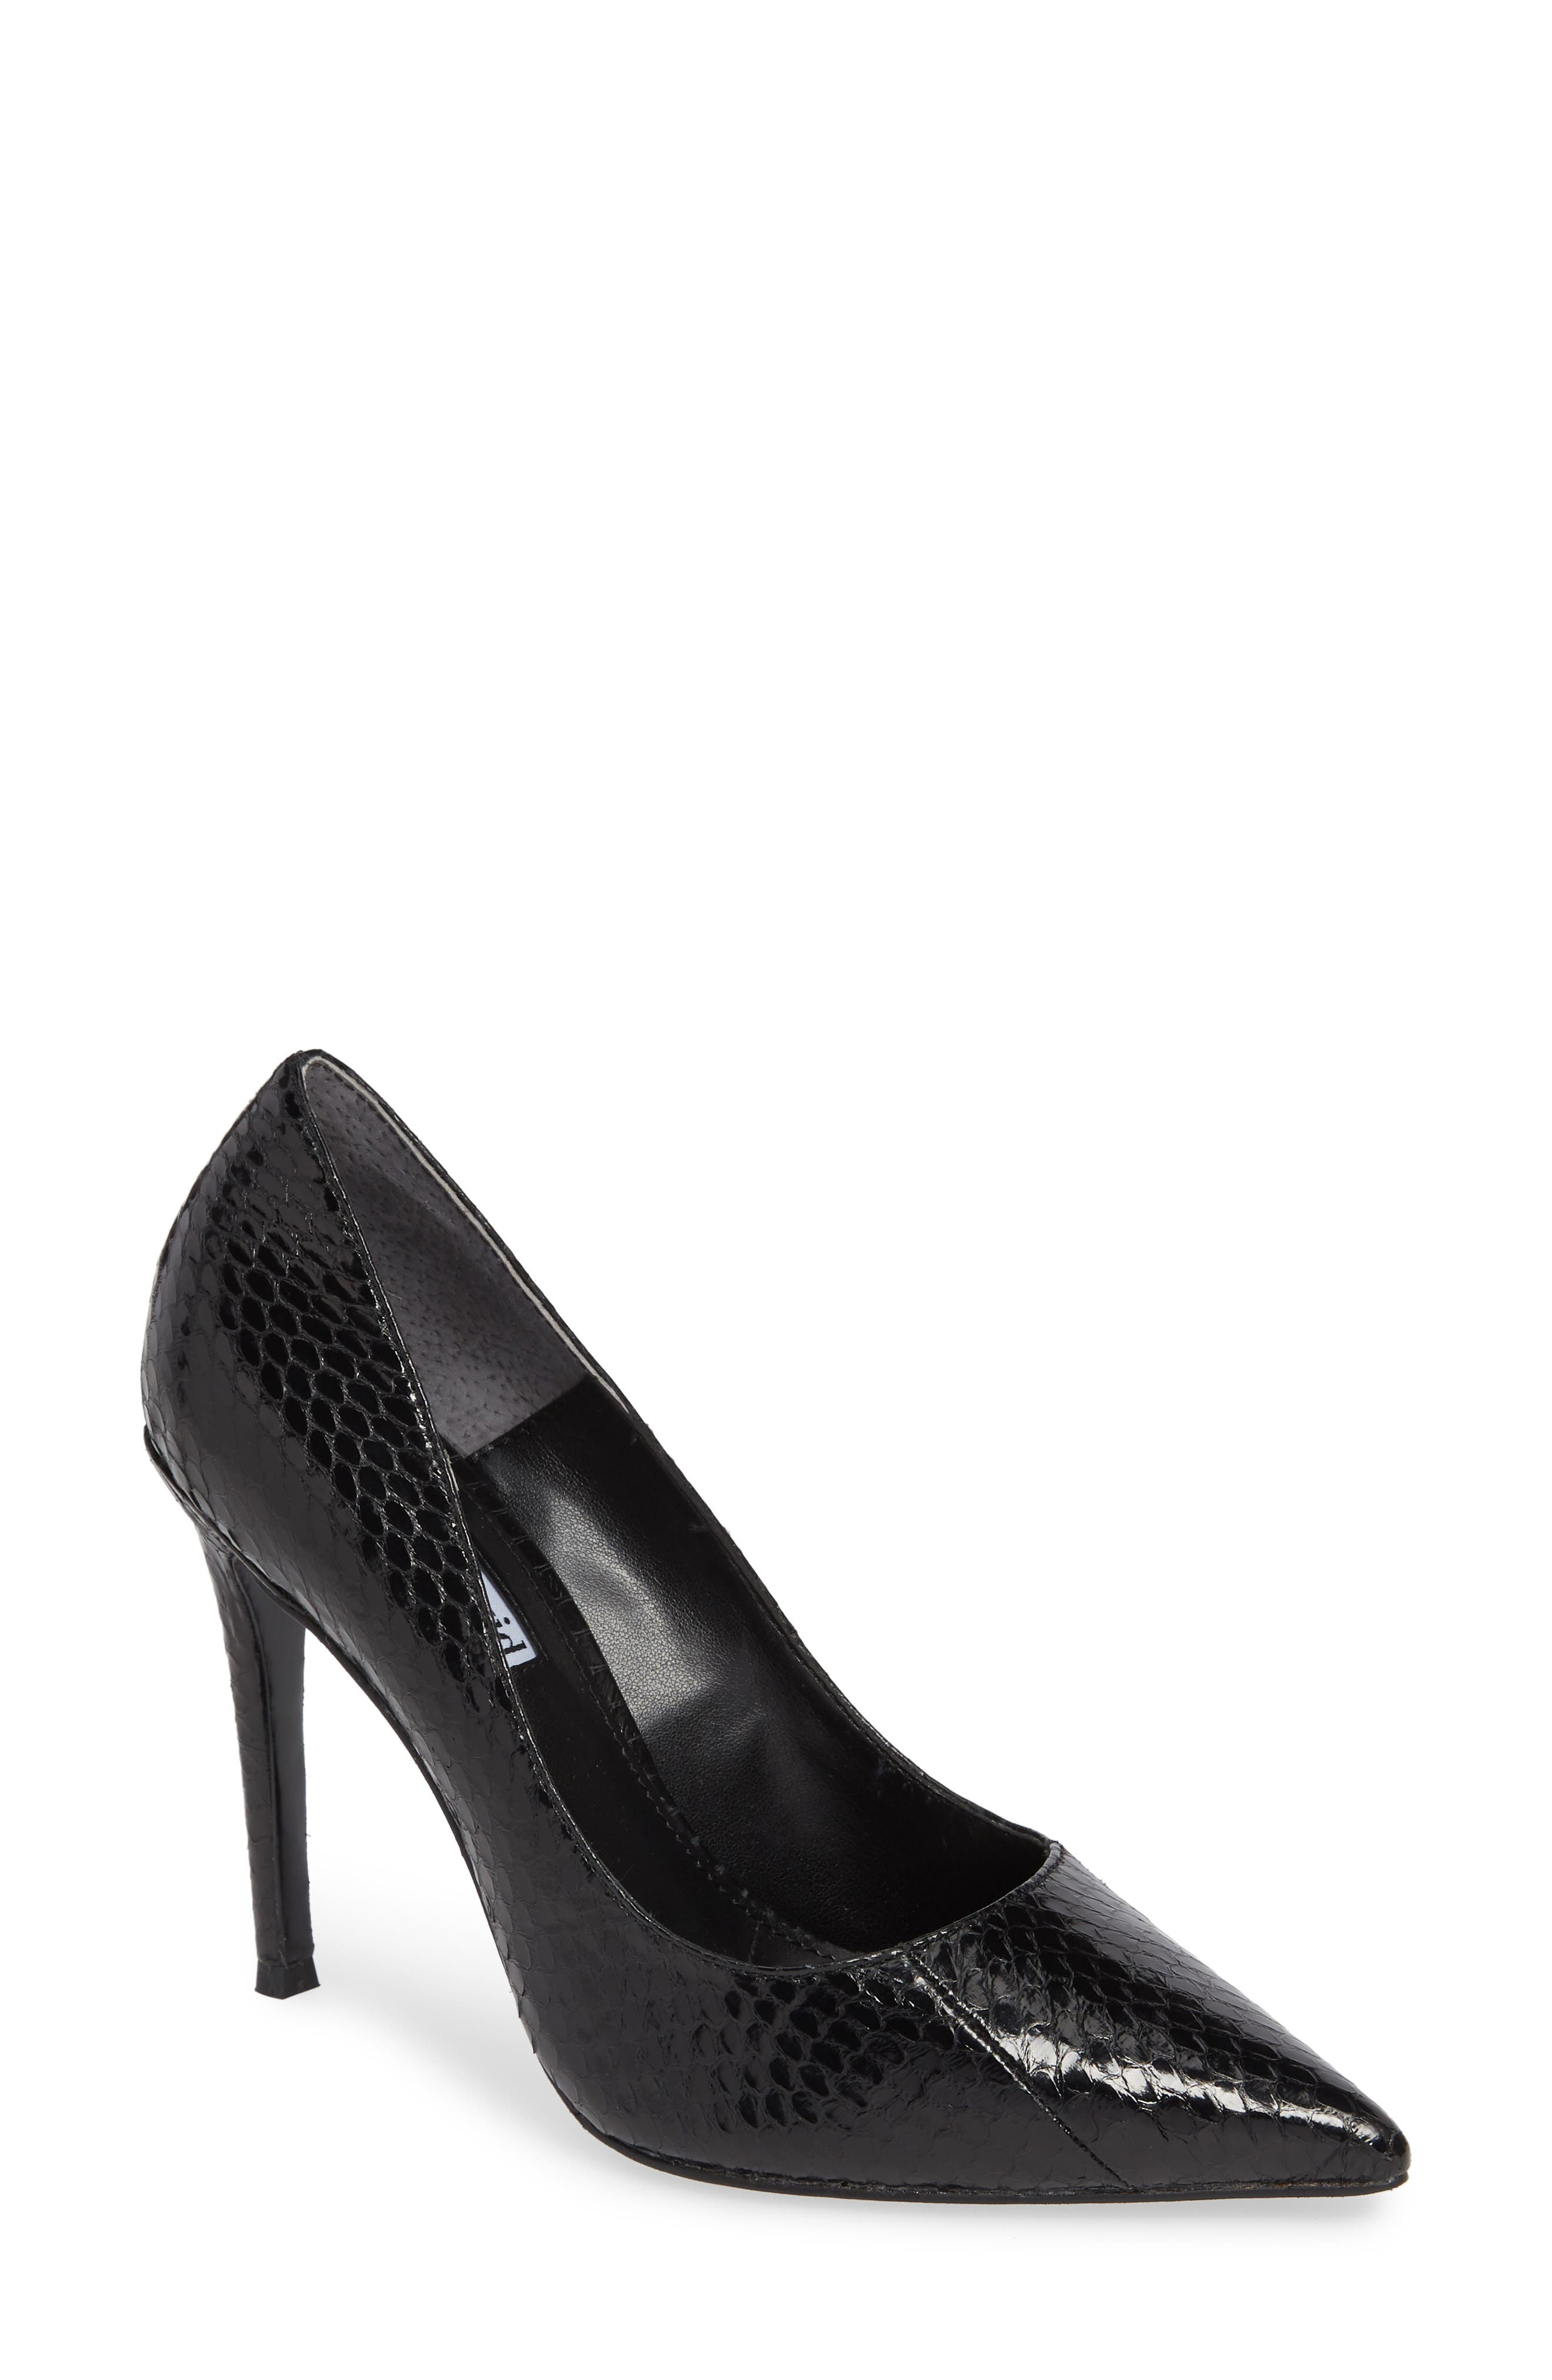 Calessi Pointy Toe Pump,                         Main,                         color, BLACK SNAKE PRINT LEATHER